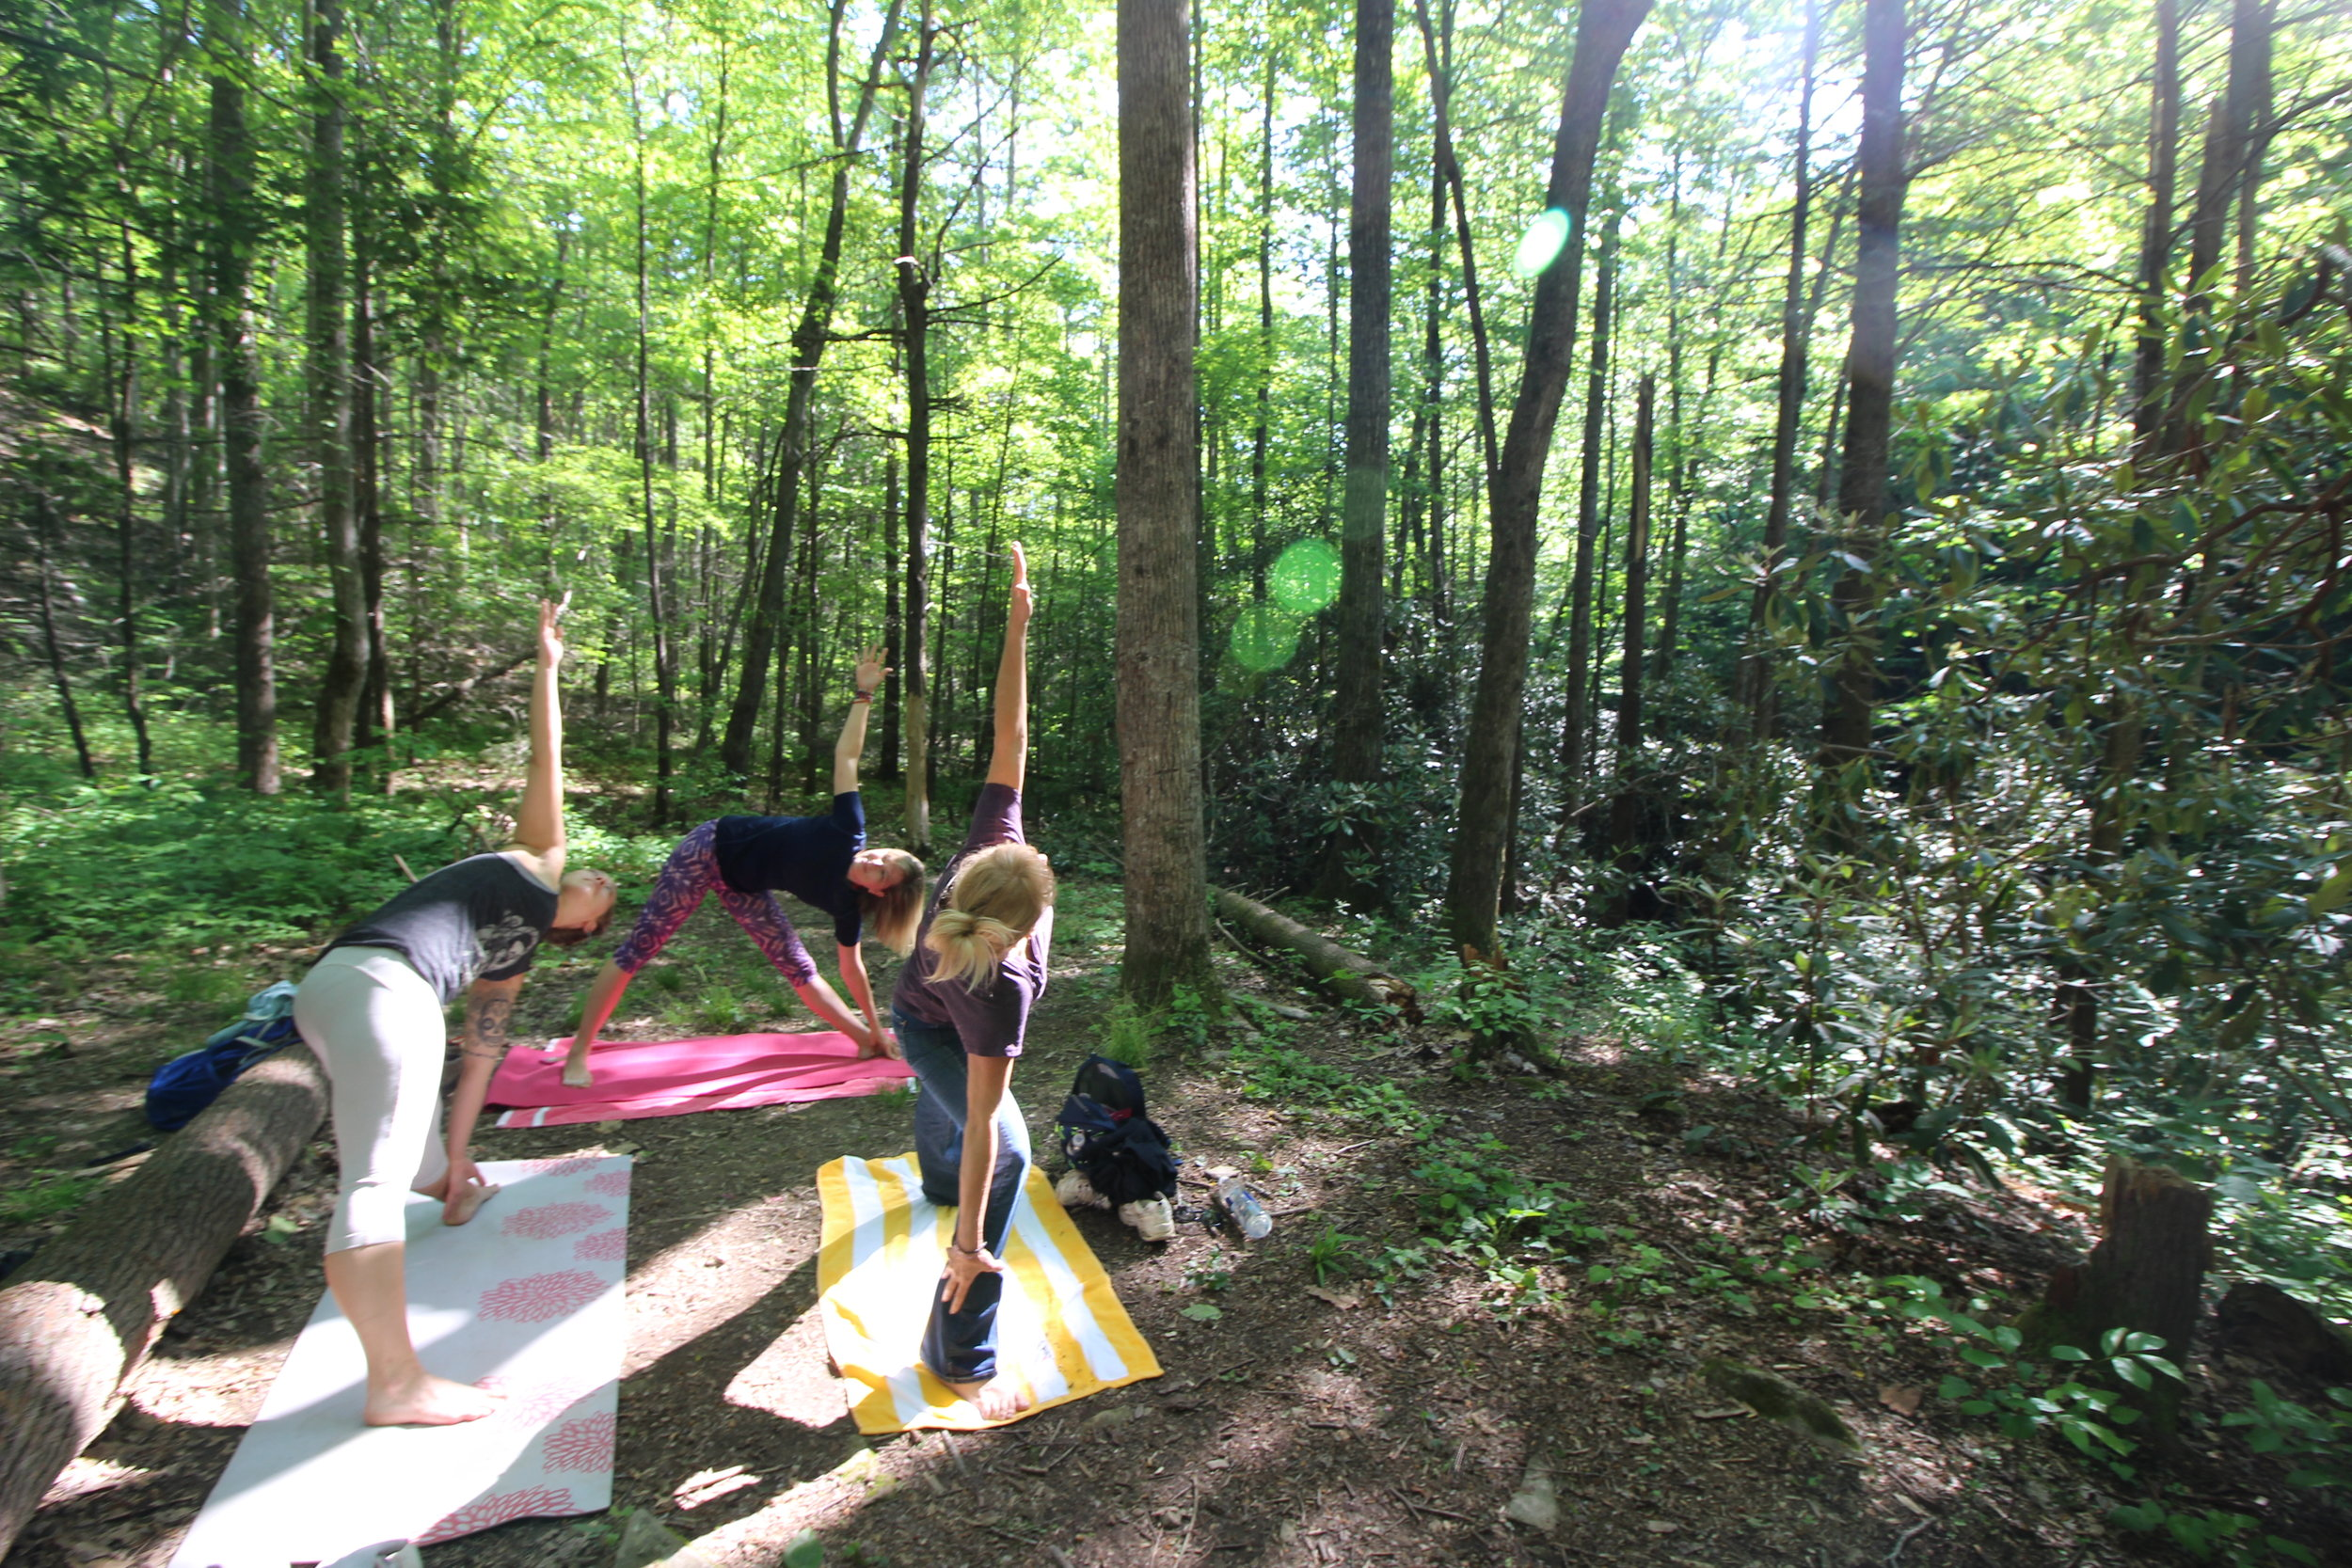 My first yoga hike meet-up in May 2017